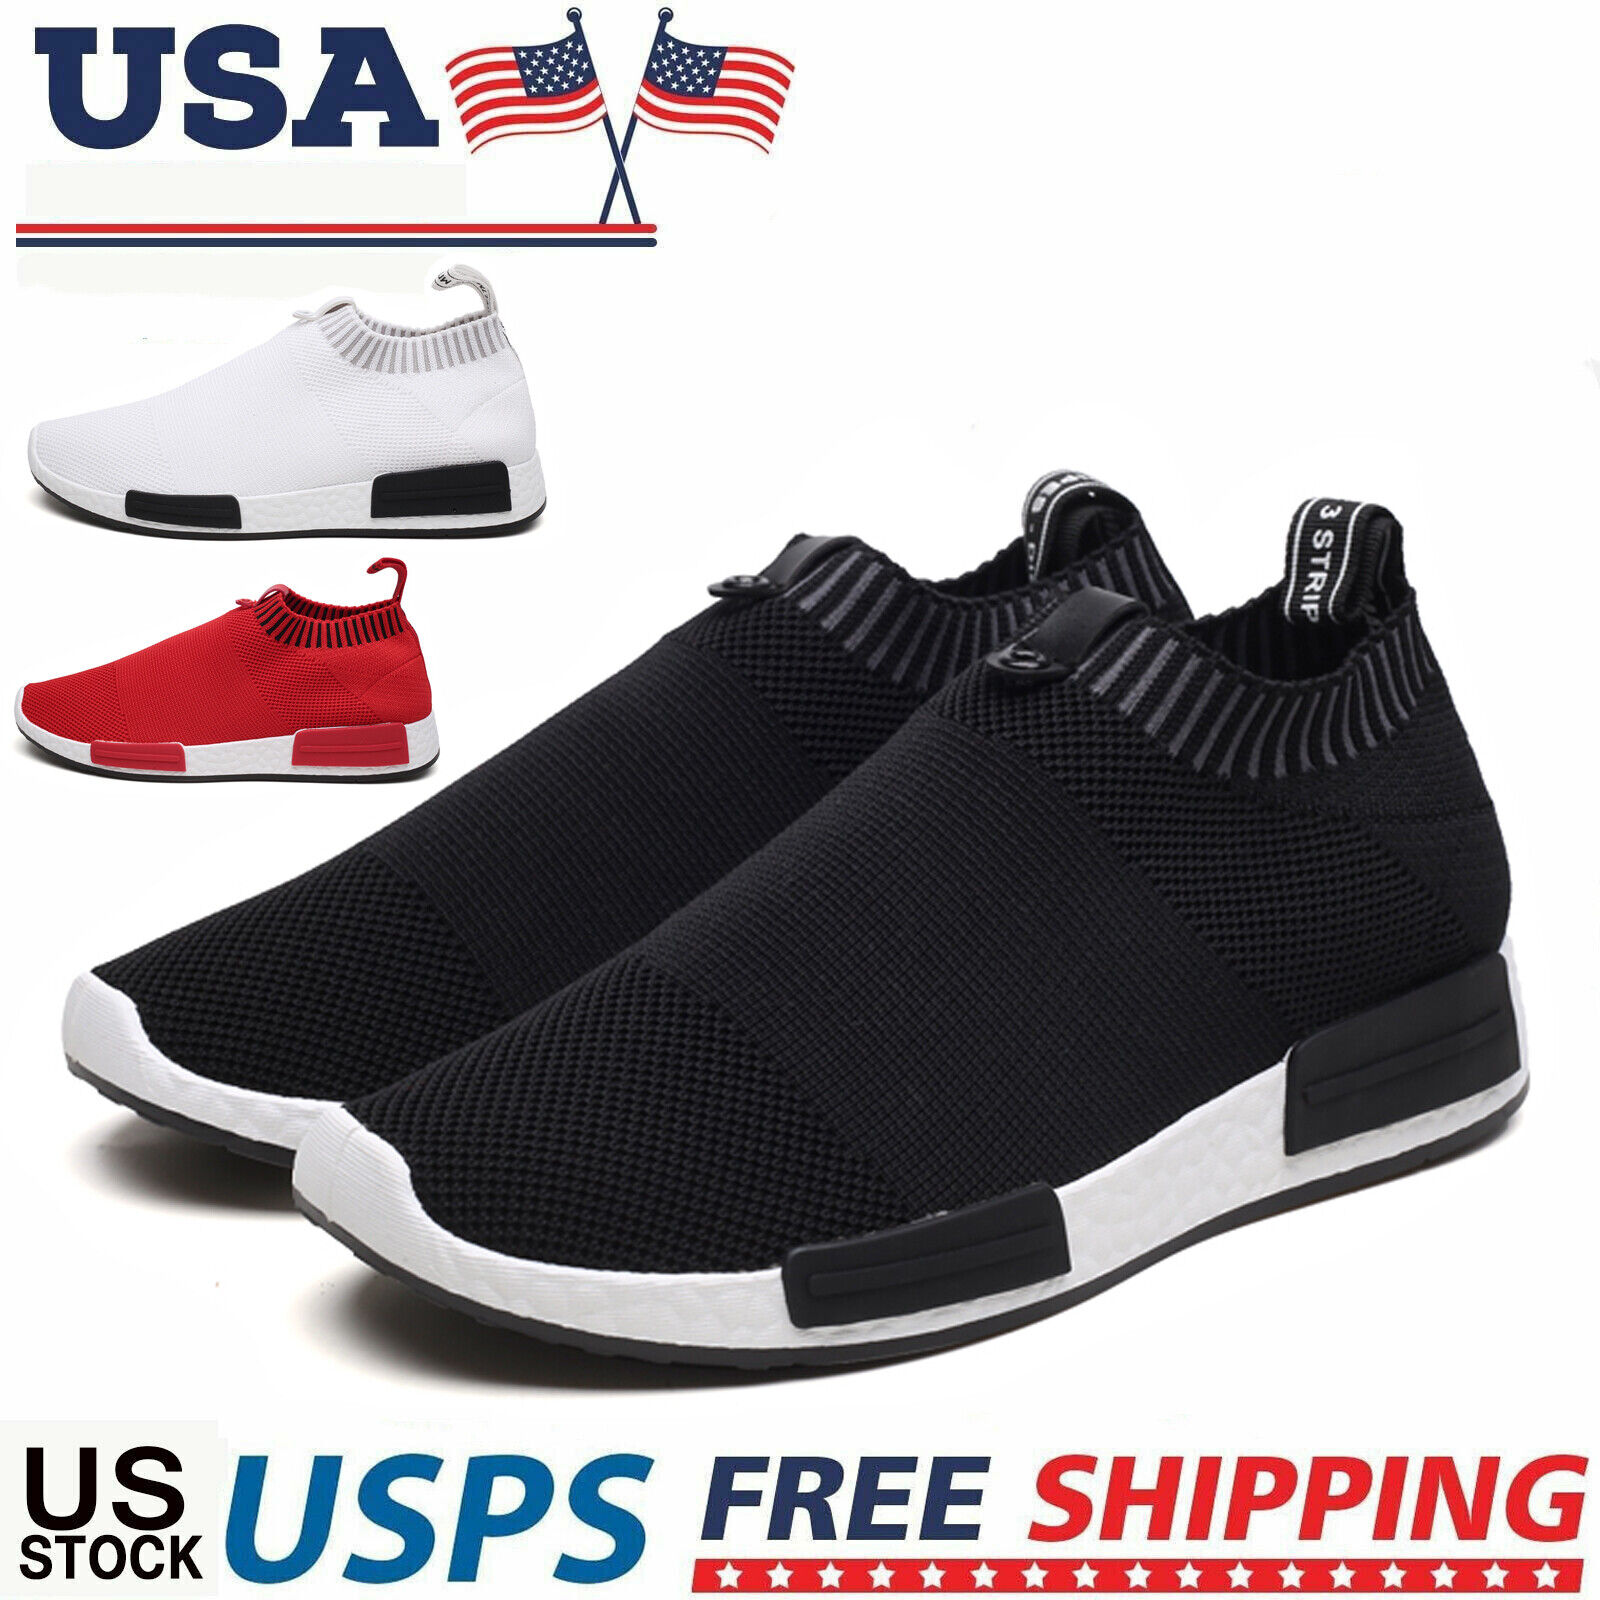 Honnesserry Mens Sneakers Non Slip Tennis Work Shoes Graffiti Fashion Slip Resistant Athletic Sports Running Casual Walking Gym Workout Shoes